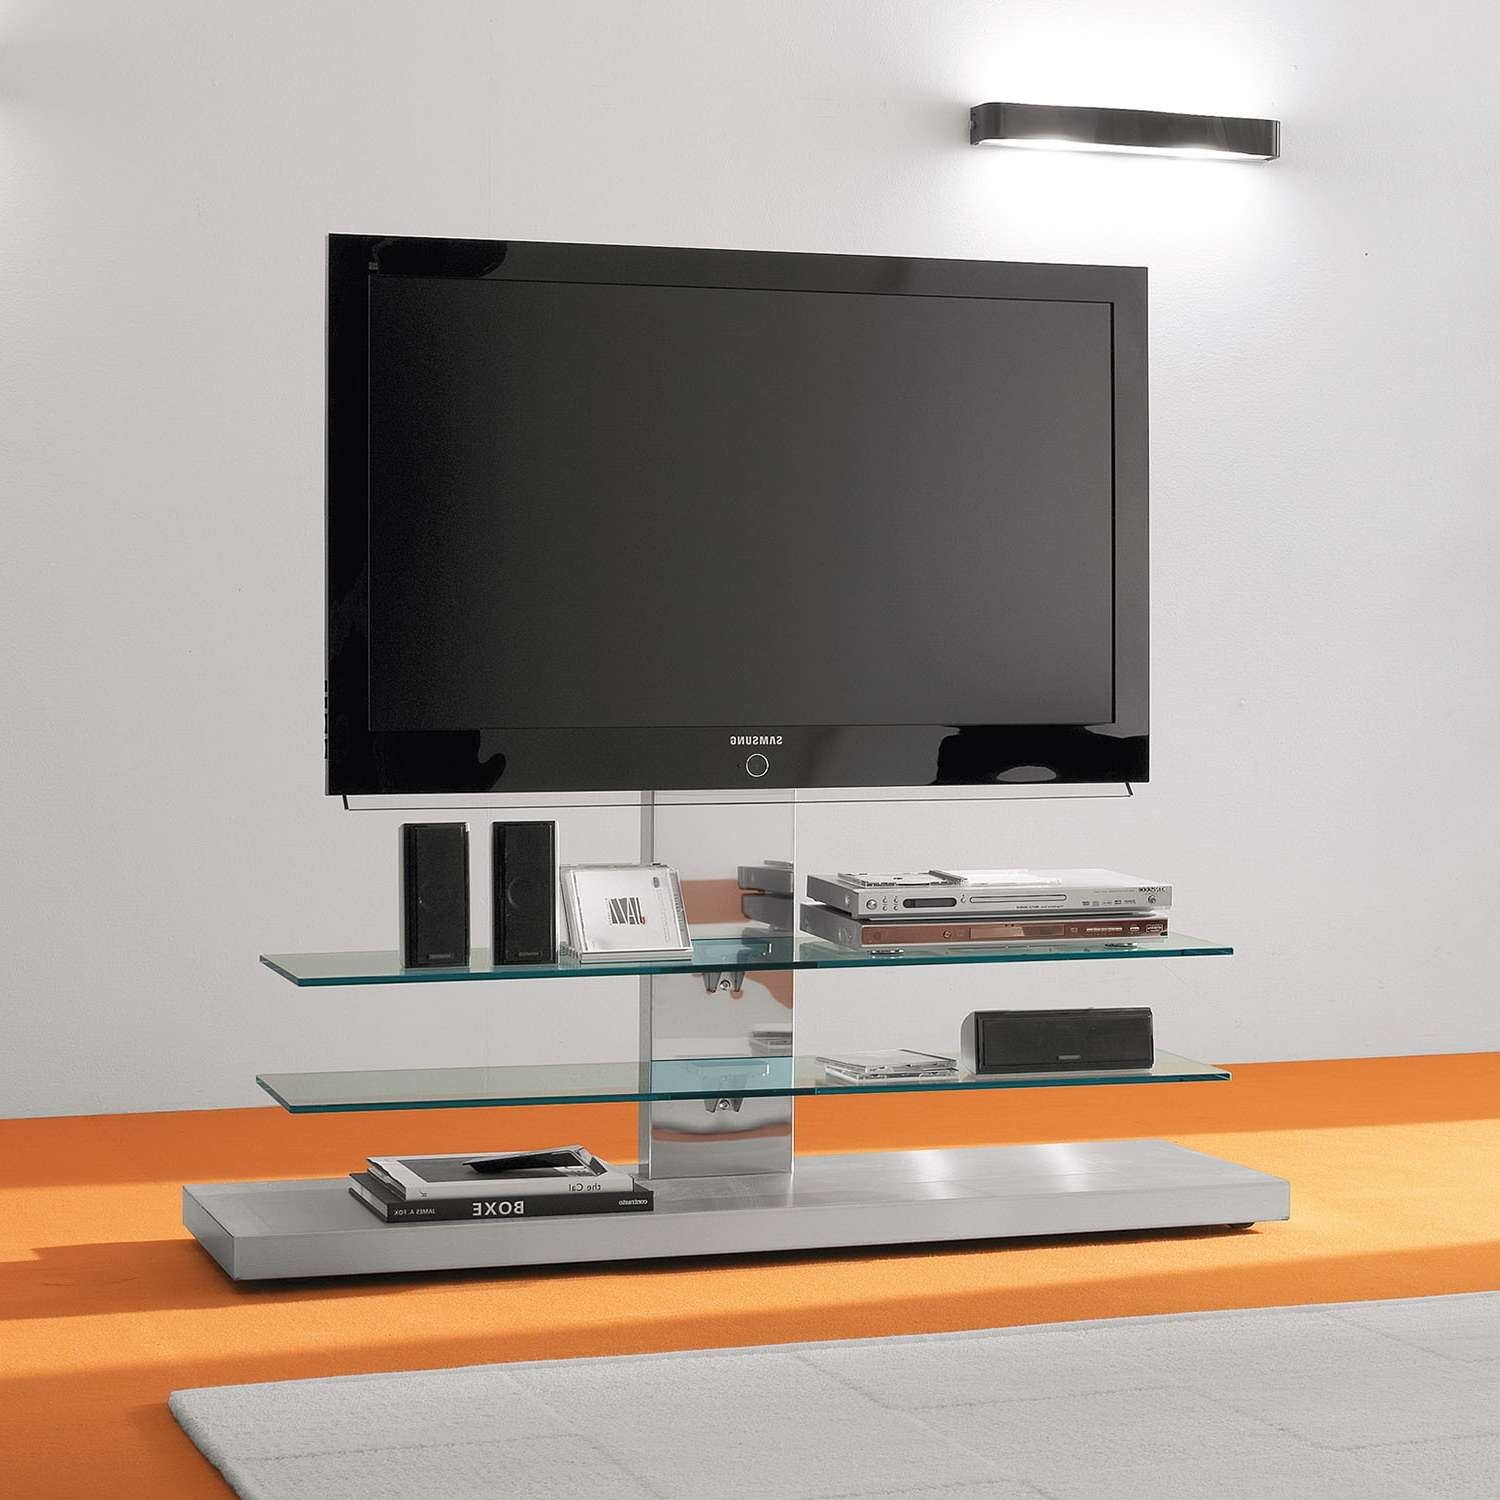 Panorama Adjustable Tv Stand With Casters – Arredaclick With Regard To Panorama Tv Stands (View 11 of 20)